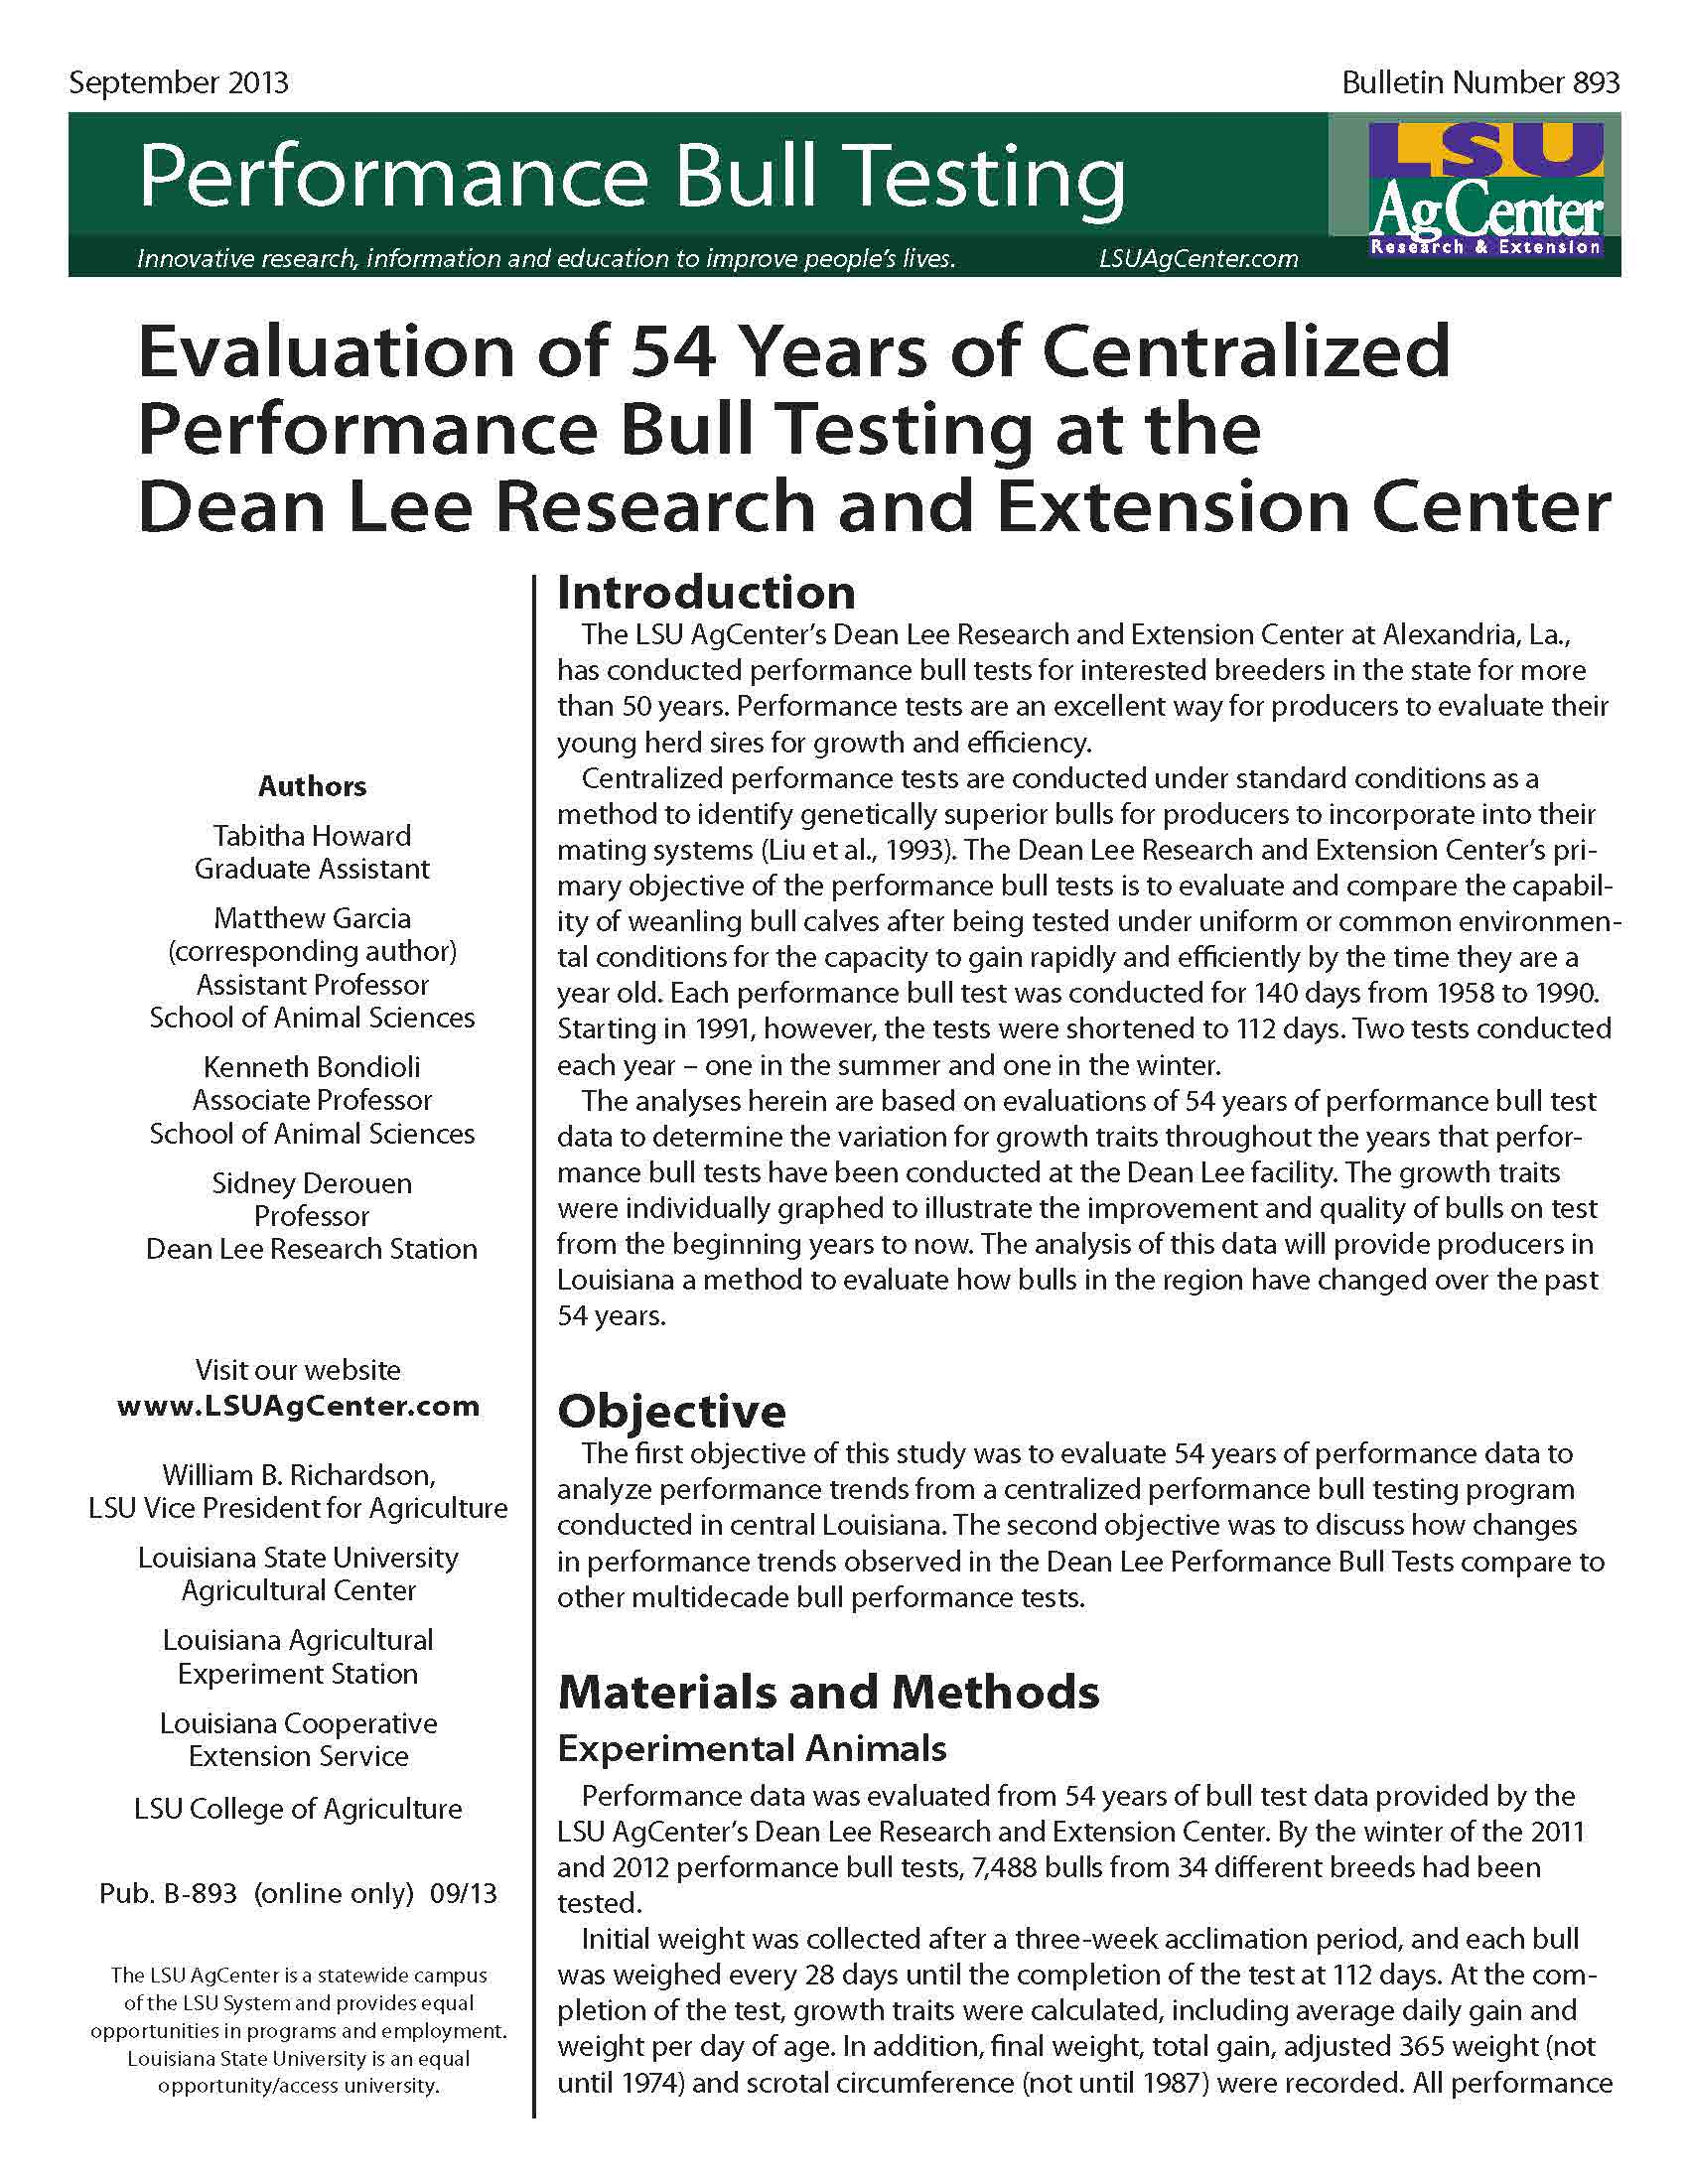 Evaluation of 54 Years of Centralized Performance Bull Testing at the Dean Lee Research and Extension Center